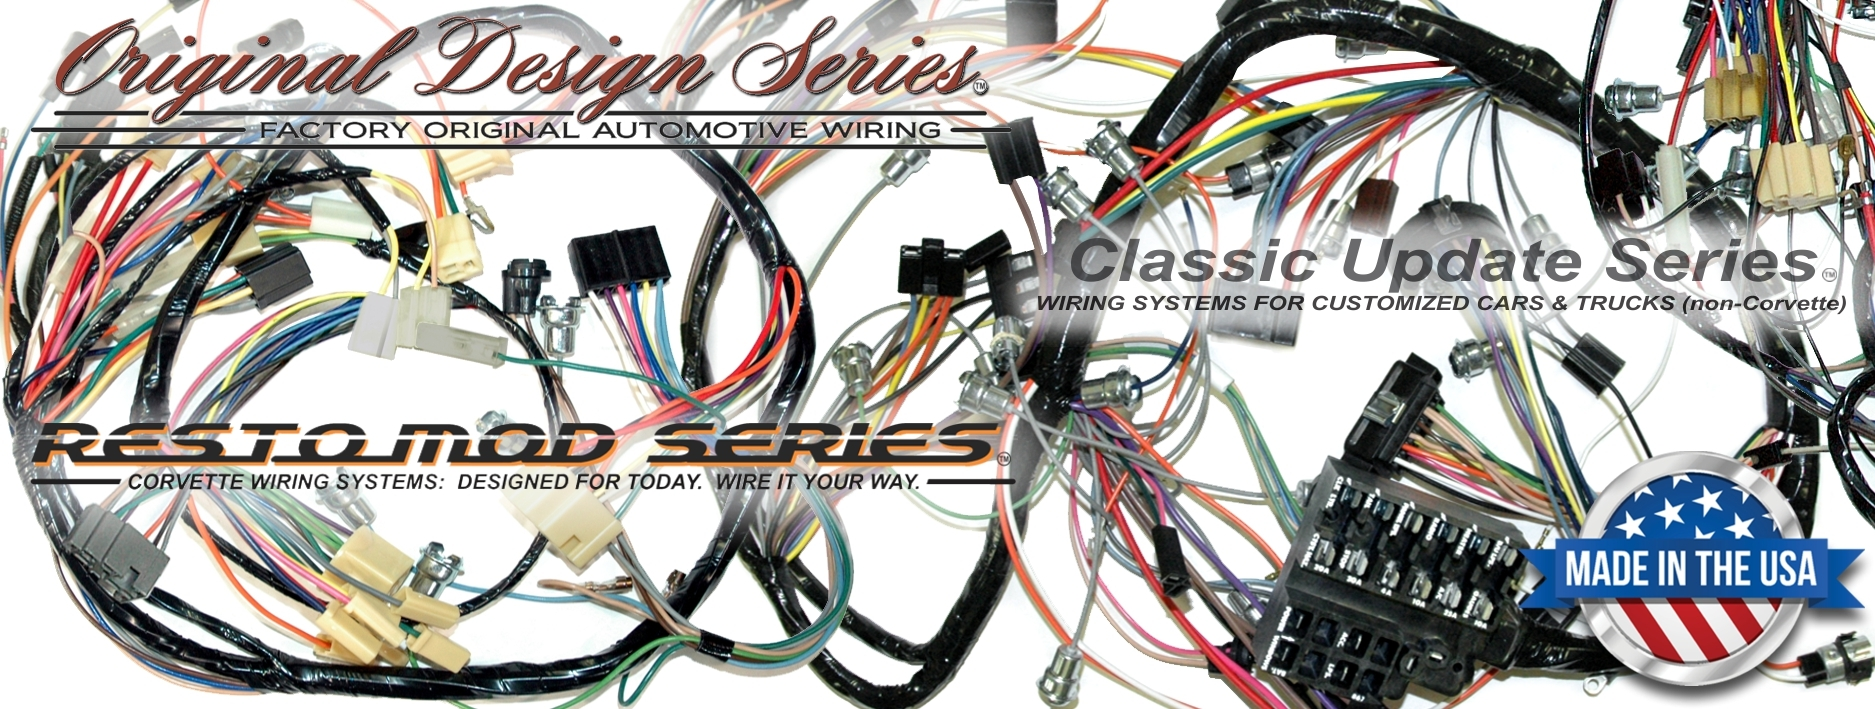 hight resolution of vintage auto wiring harness wiring diagram detailed universal wiring harness kits for cars old exact oem